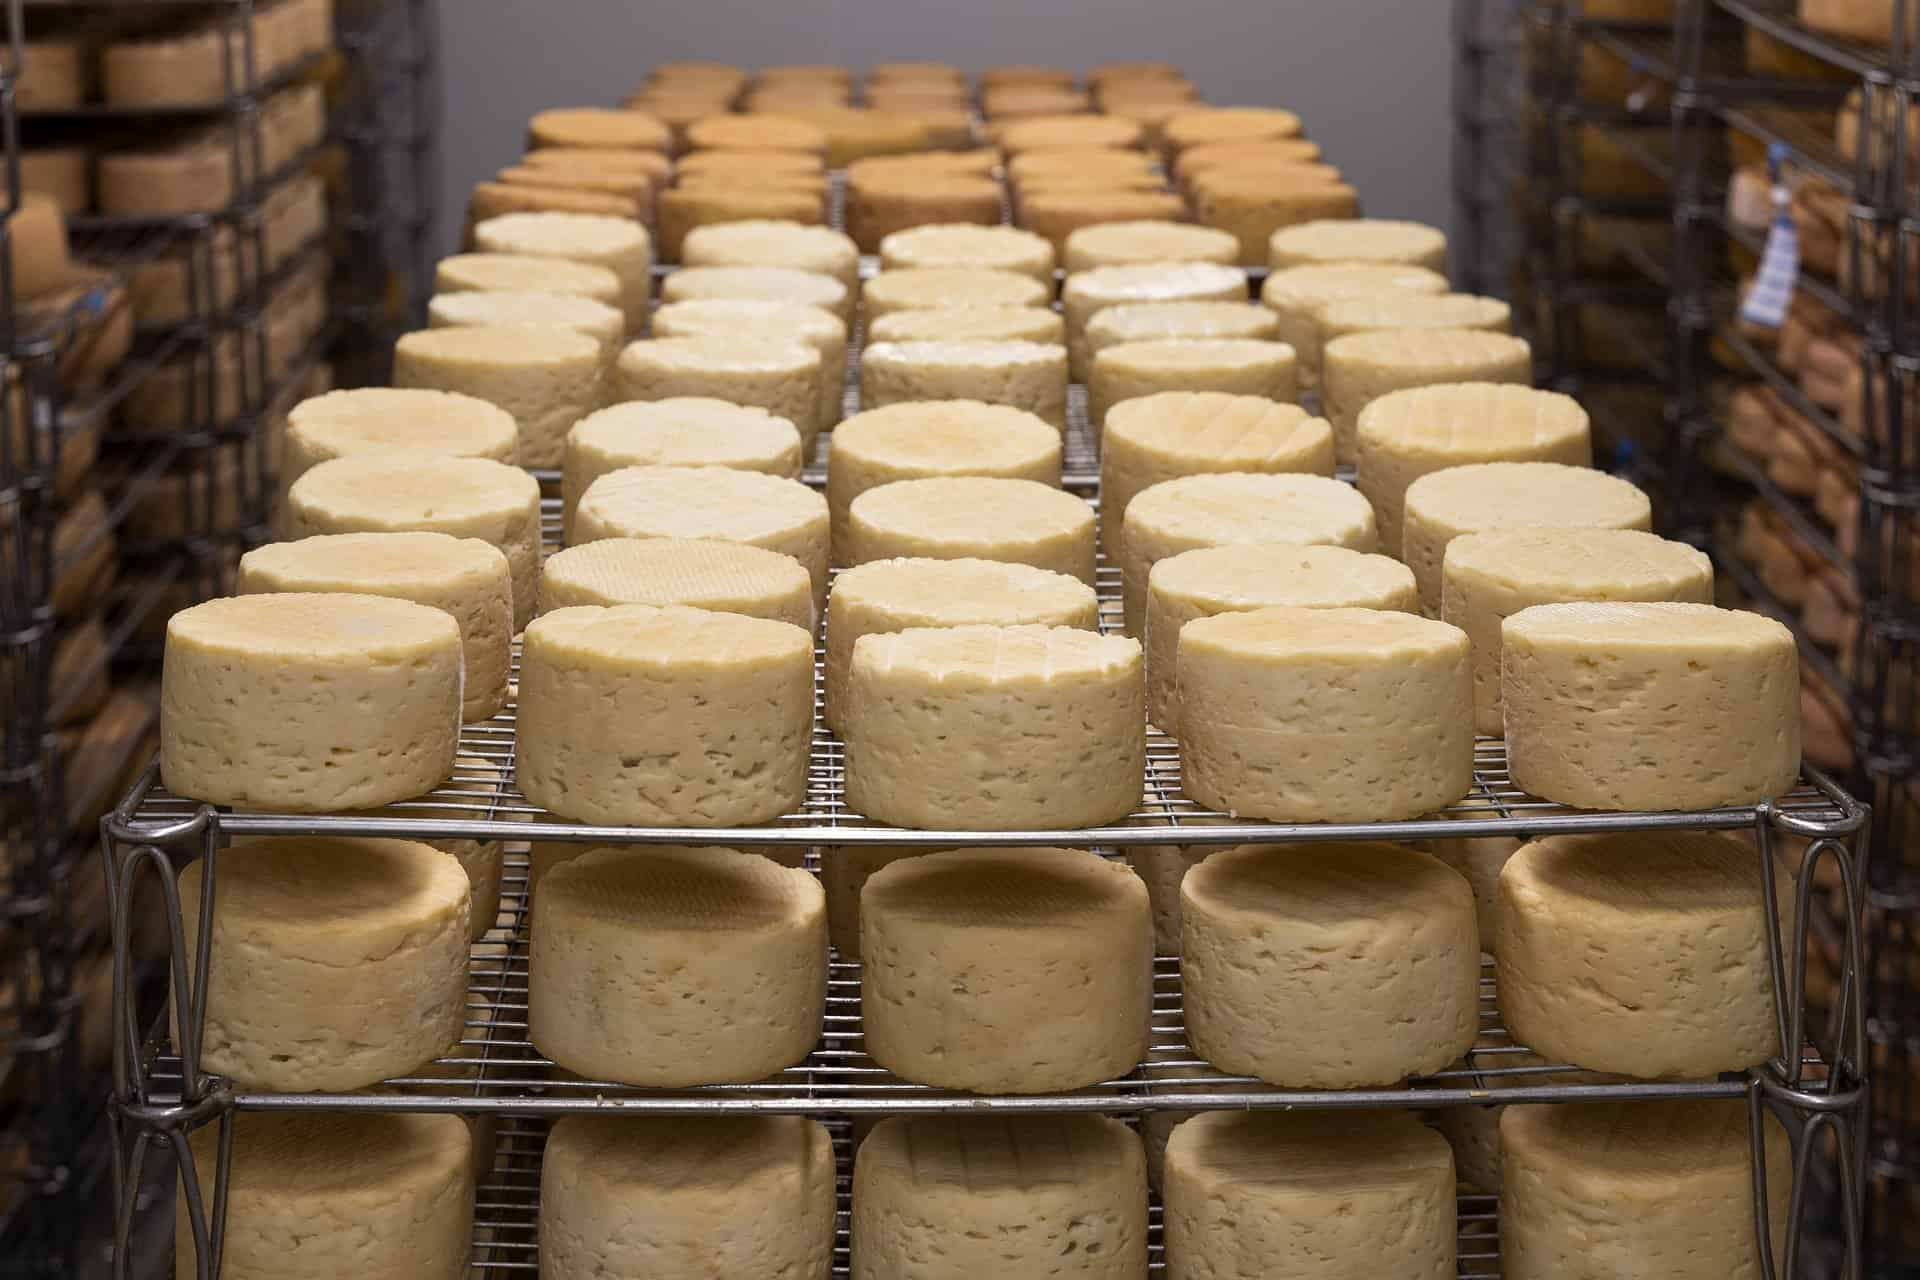 Rolls of freshly made cheese